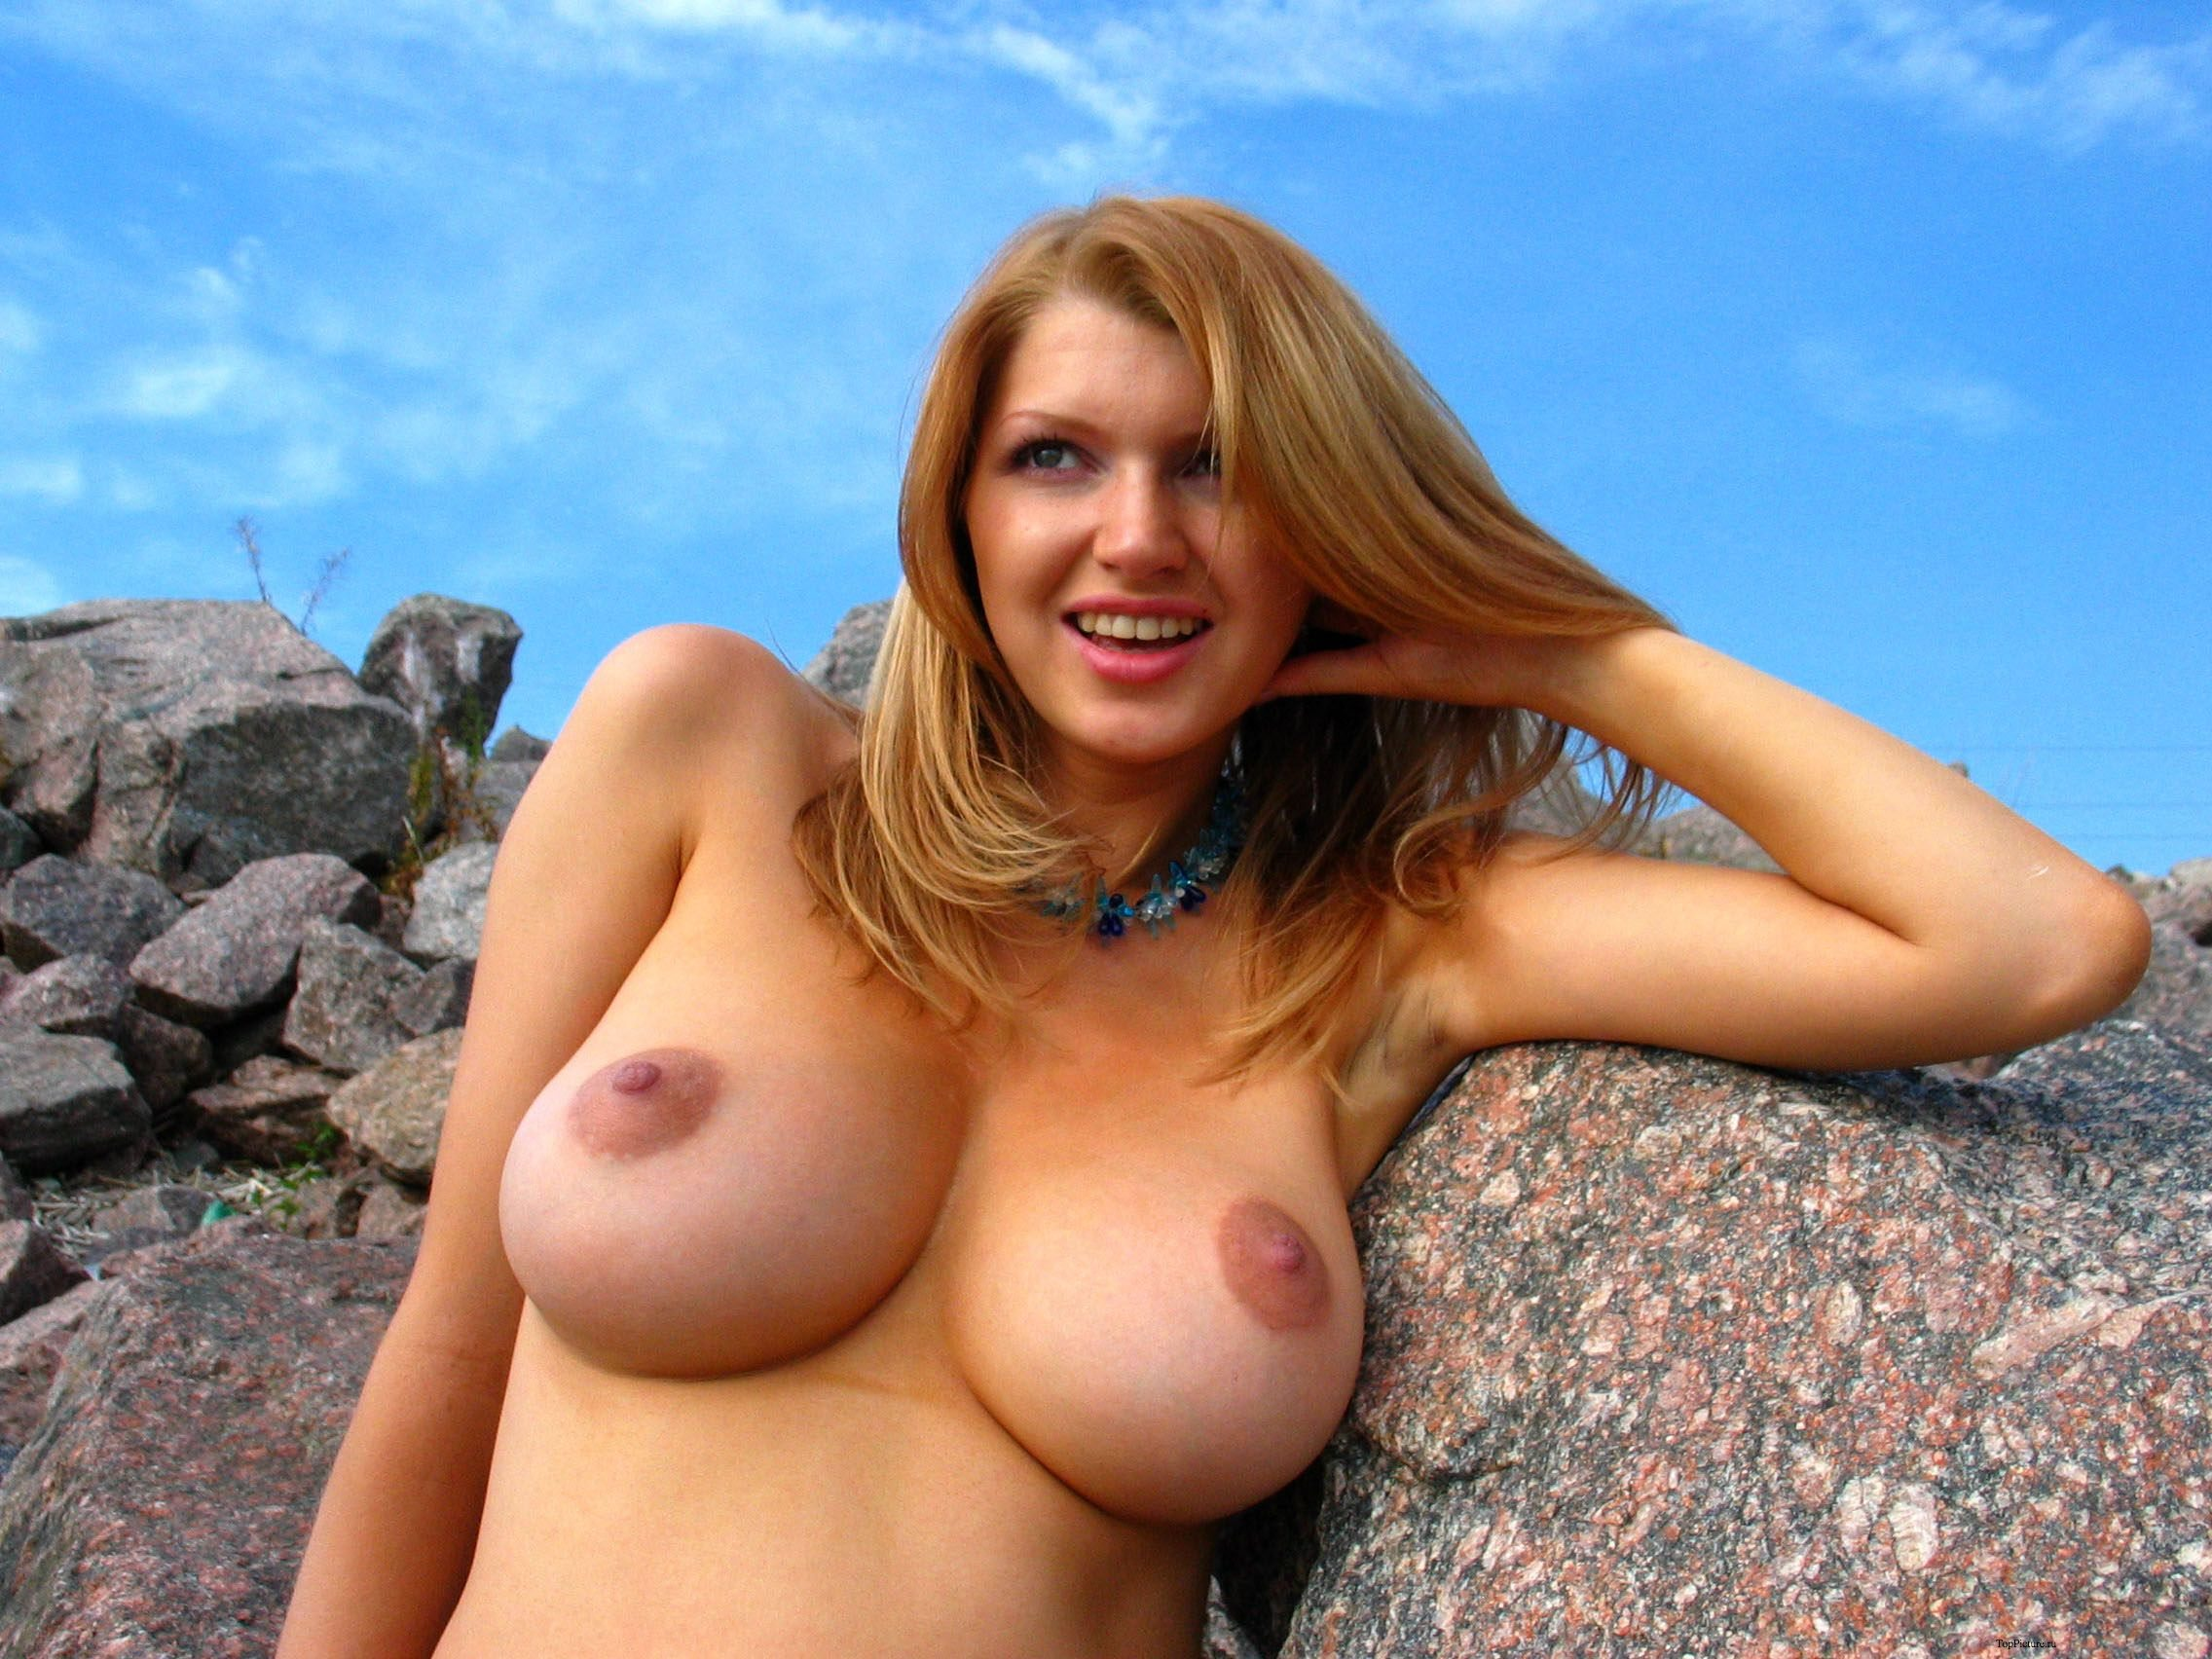 Naked big boobs australian busty woman with